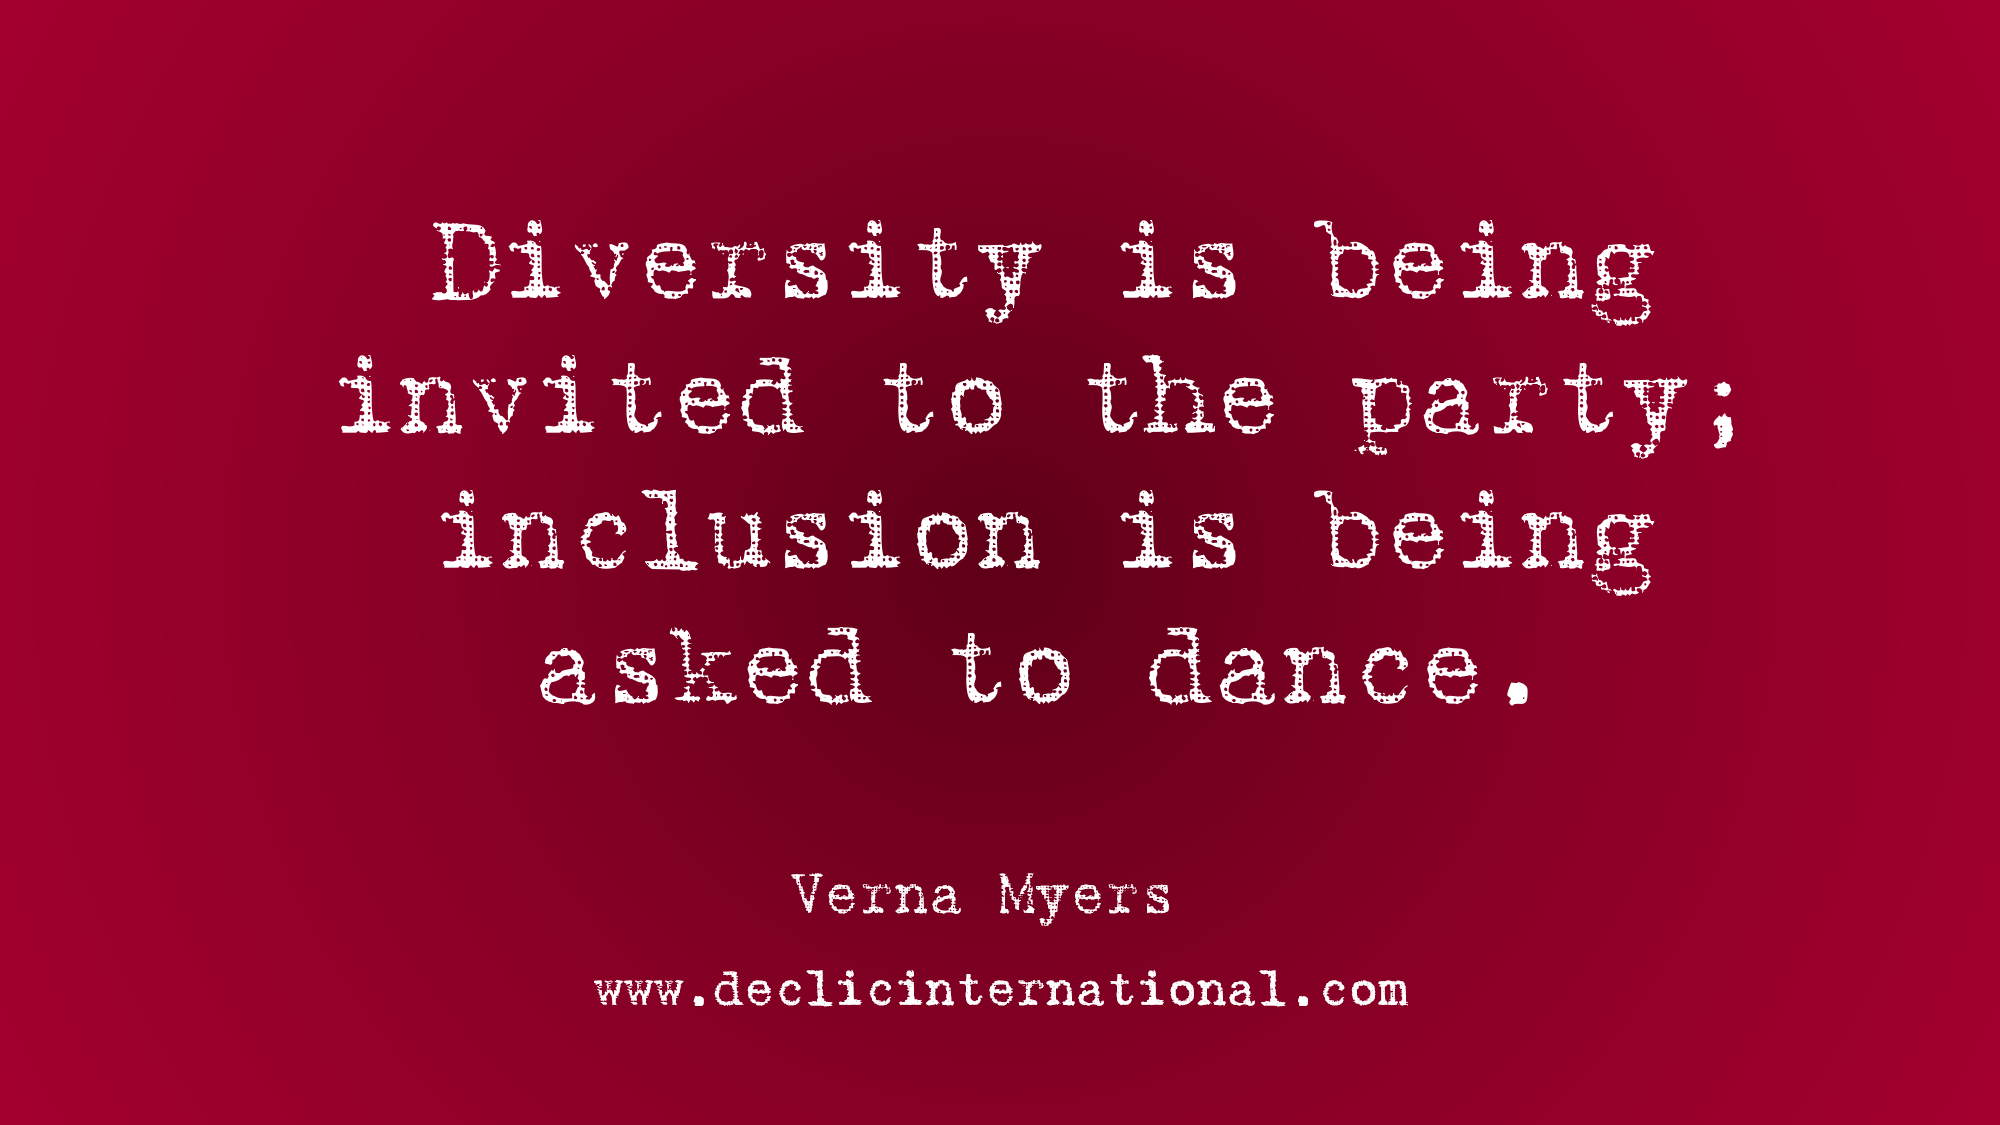 Diversity And Inclusion Quotes Custom Diversity Is Being Invited To The Party  Déclic International